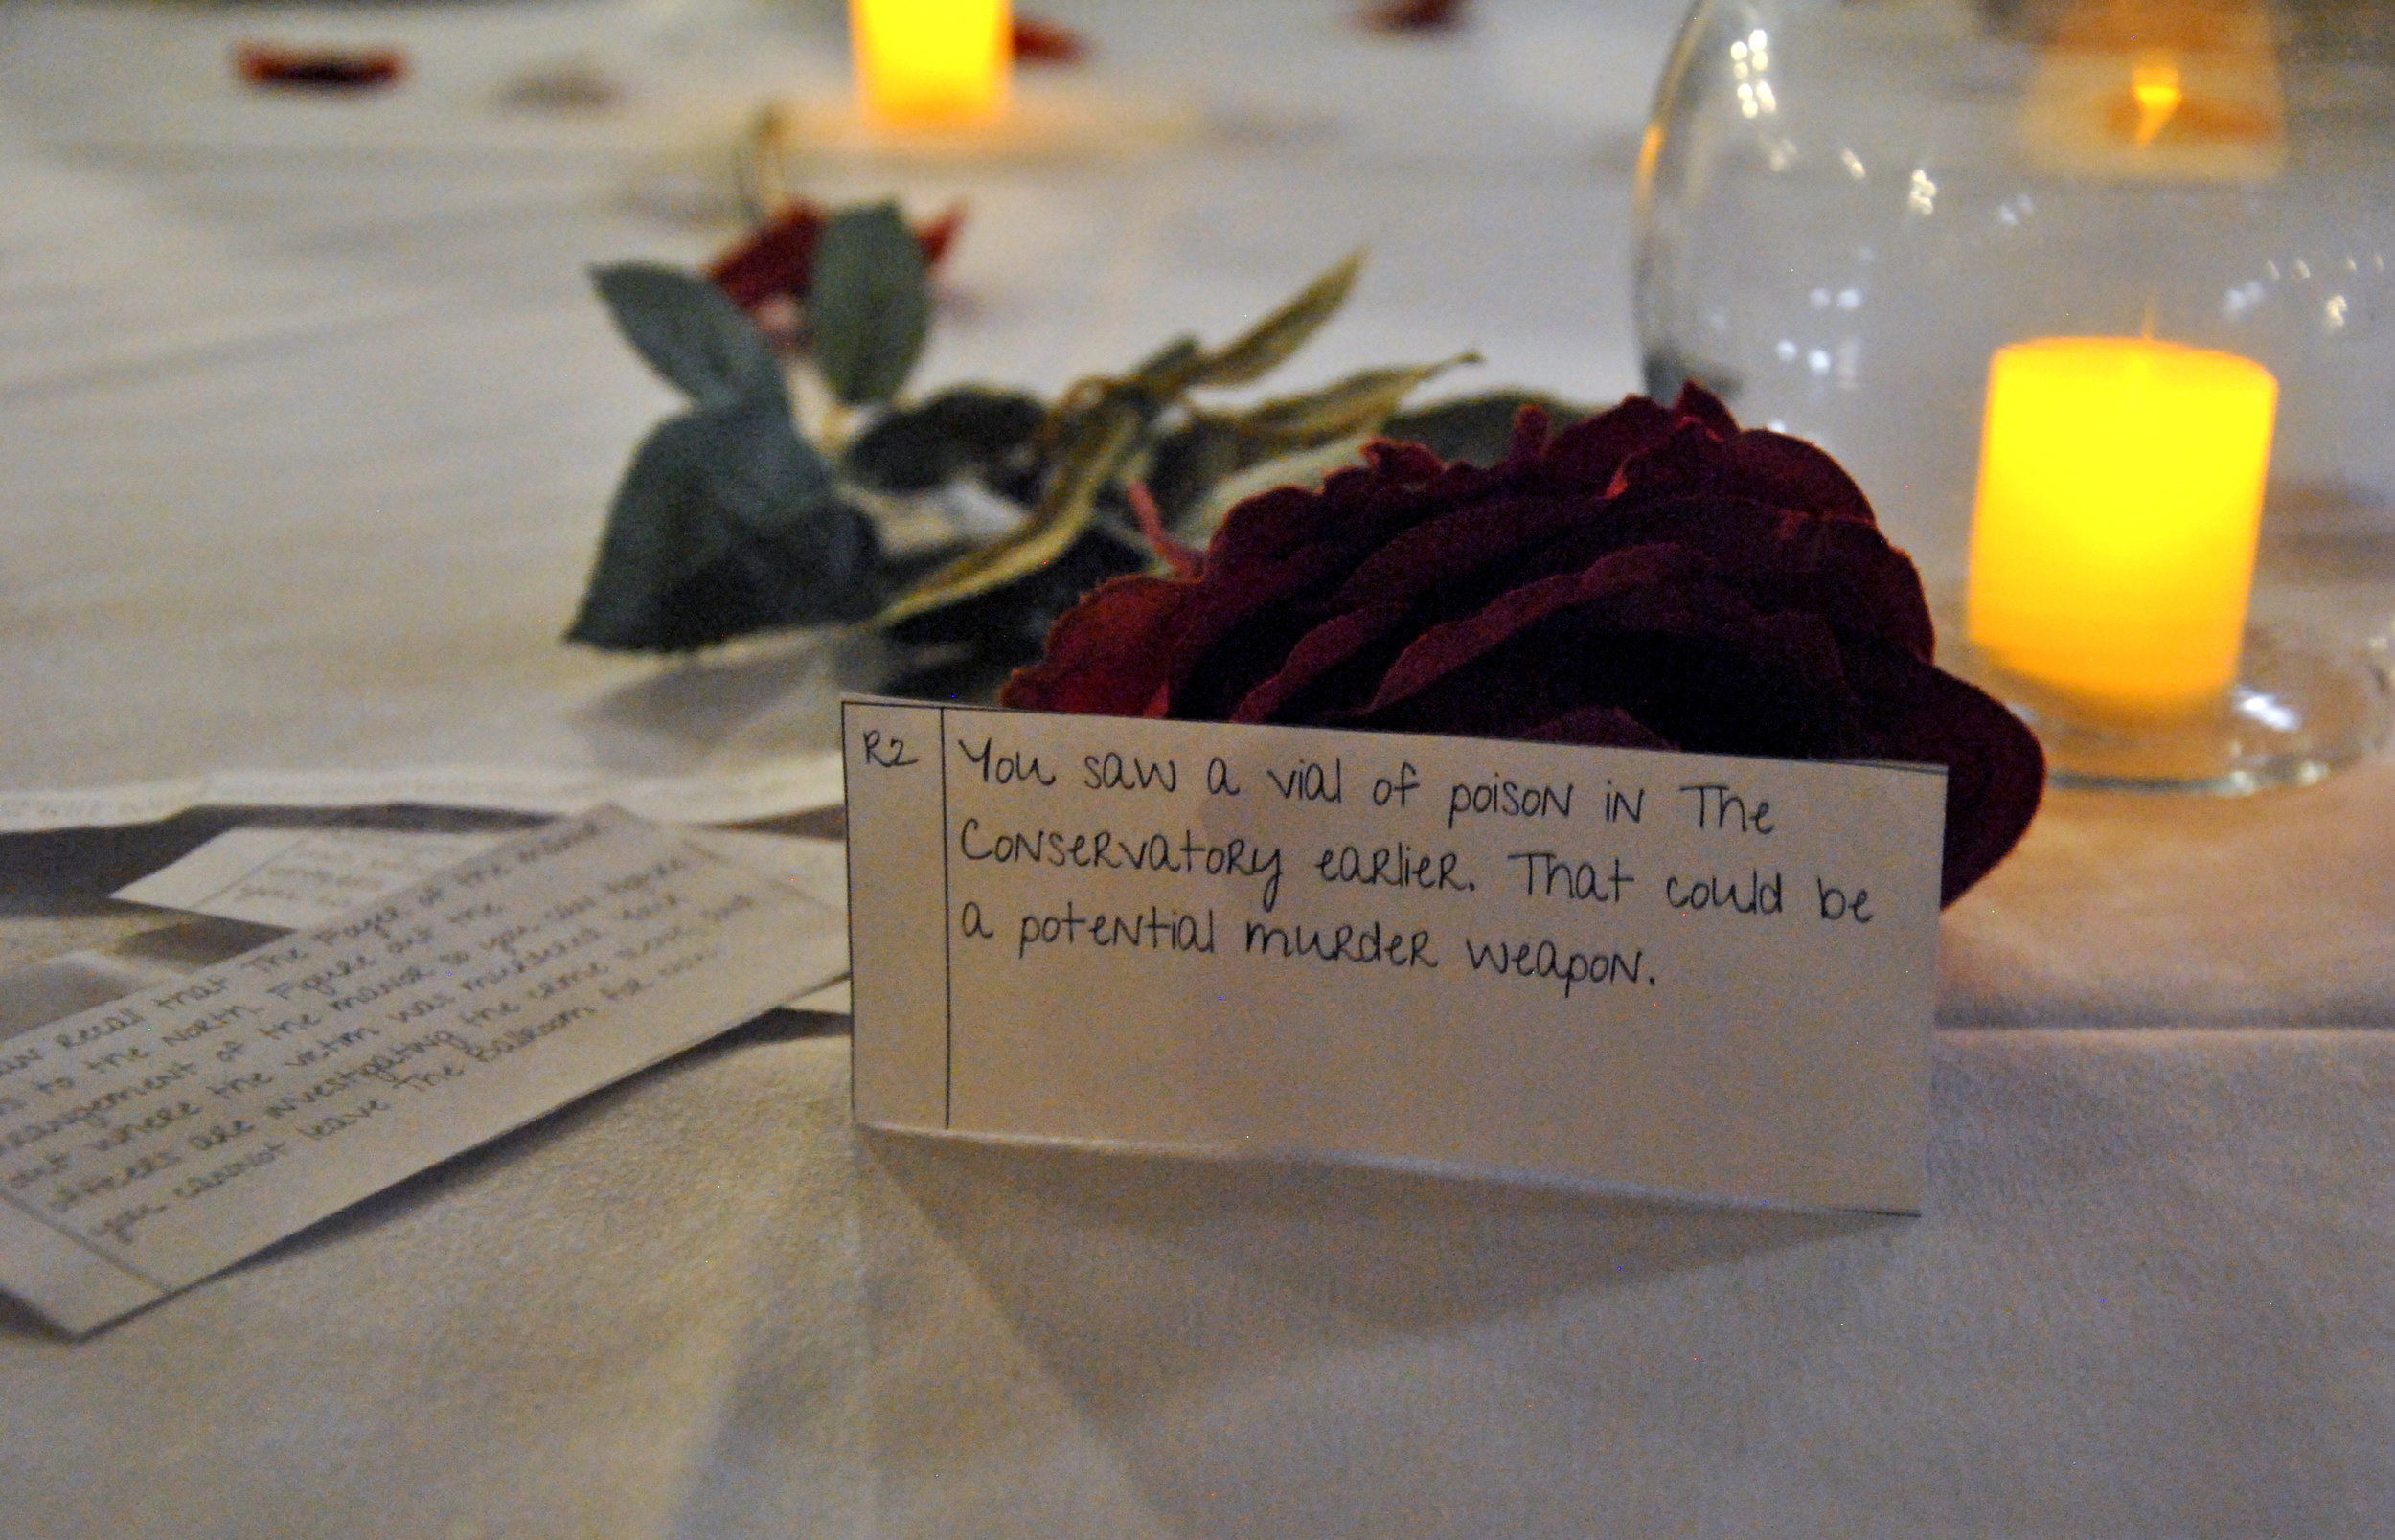 Some of the many clues at BSA's Murder Mystery event in the Kirby Ballroom on Nov. 2, 2018. Each dinner guest was given a clue when they entered the ballroom. Photo by Rebecca Kottke